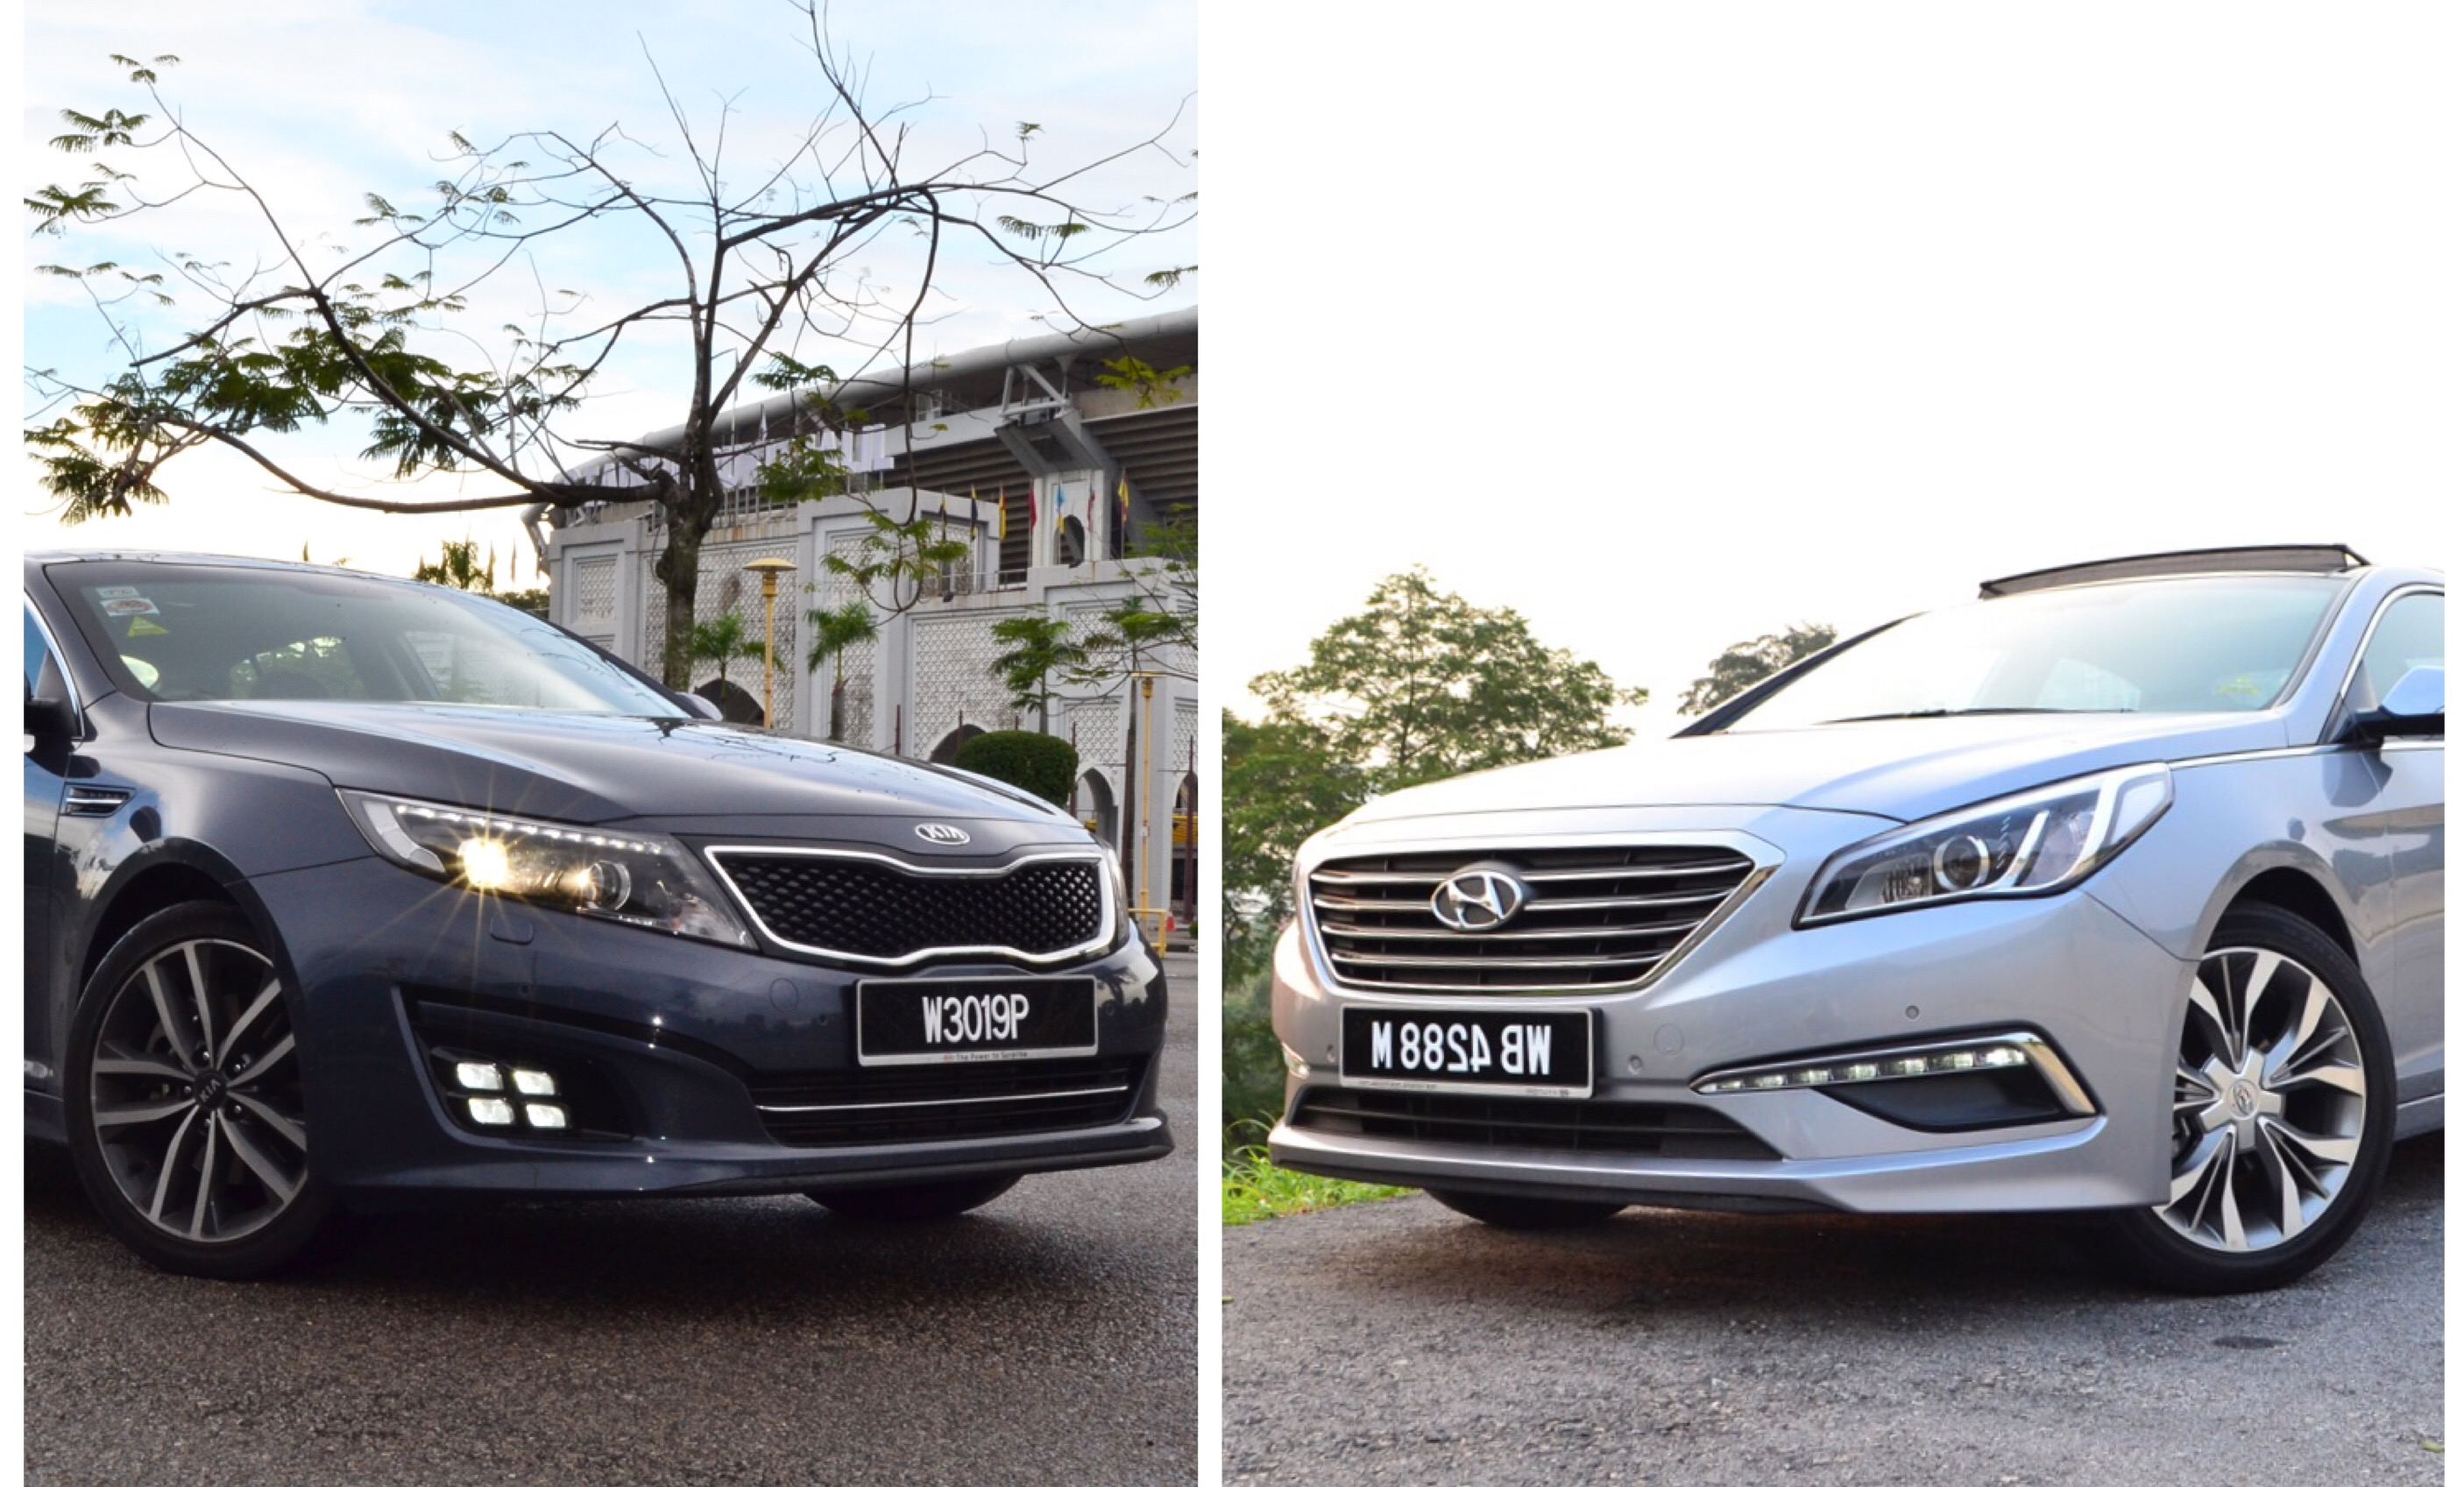 forum kia appearance modifications body frontend drl optima swop sx hybrid